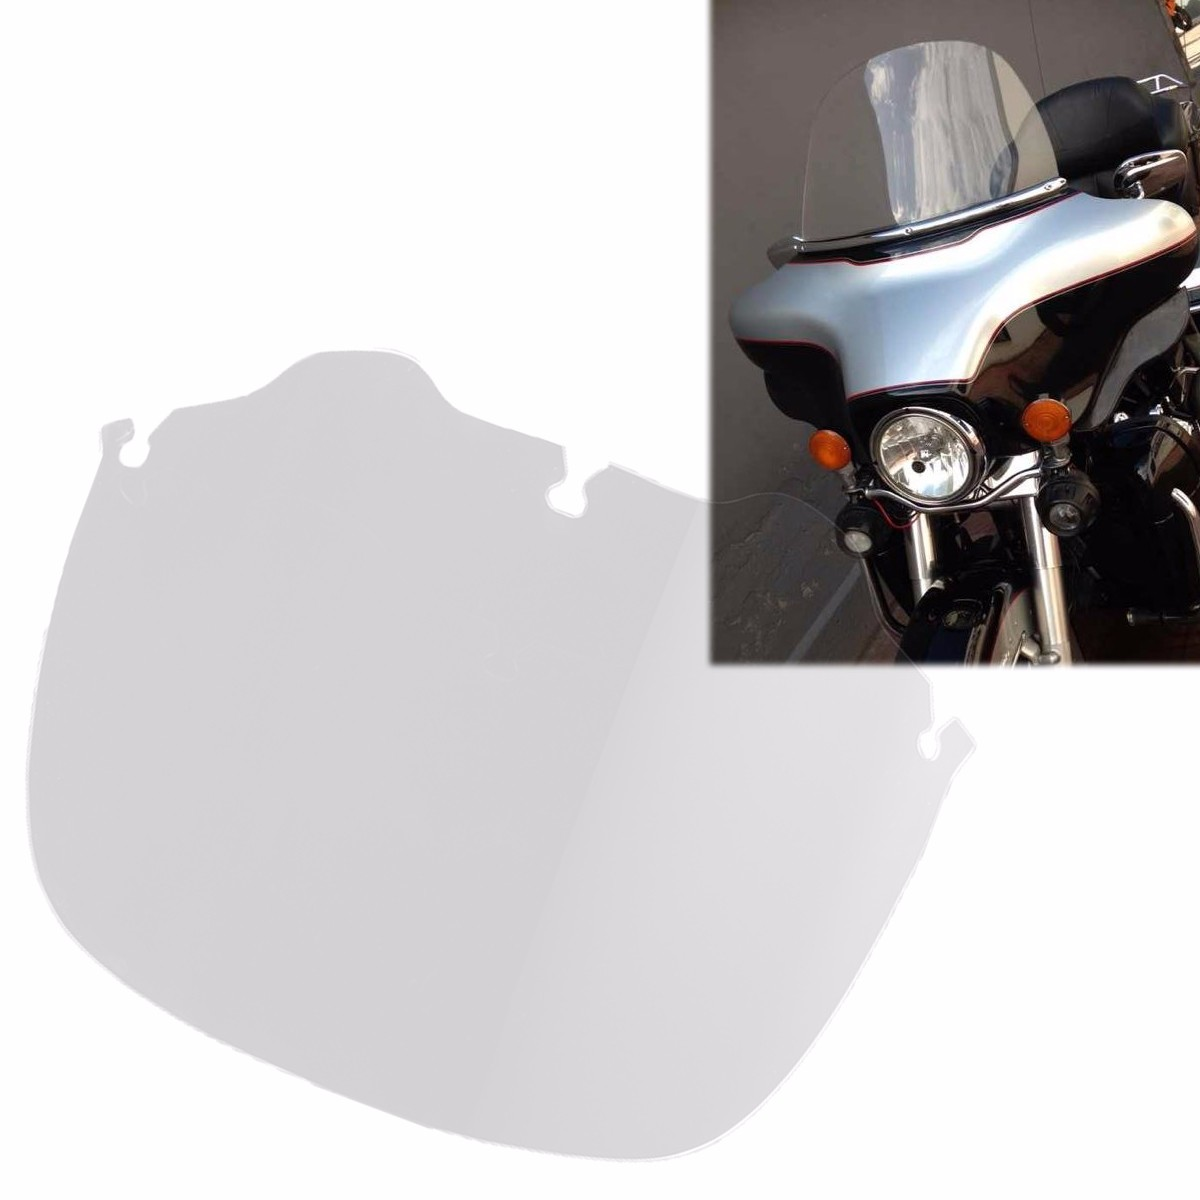 где купить 13 Inch Motorcycle windshield Windscherm Windscreen for Harley Touring Street Glide Electra Ultra Classic 1996-2013 дешево